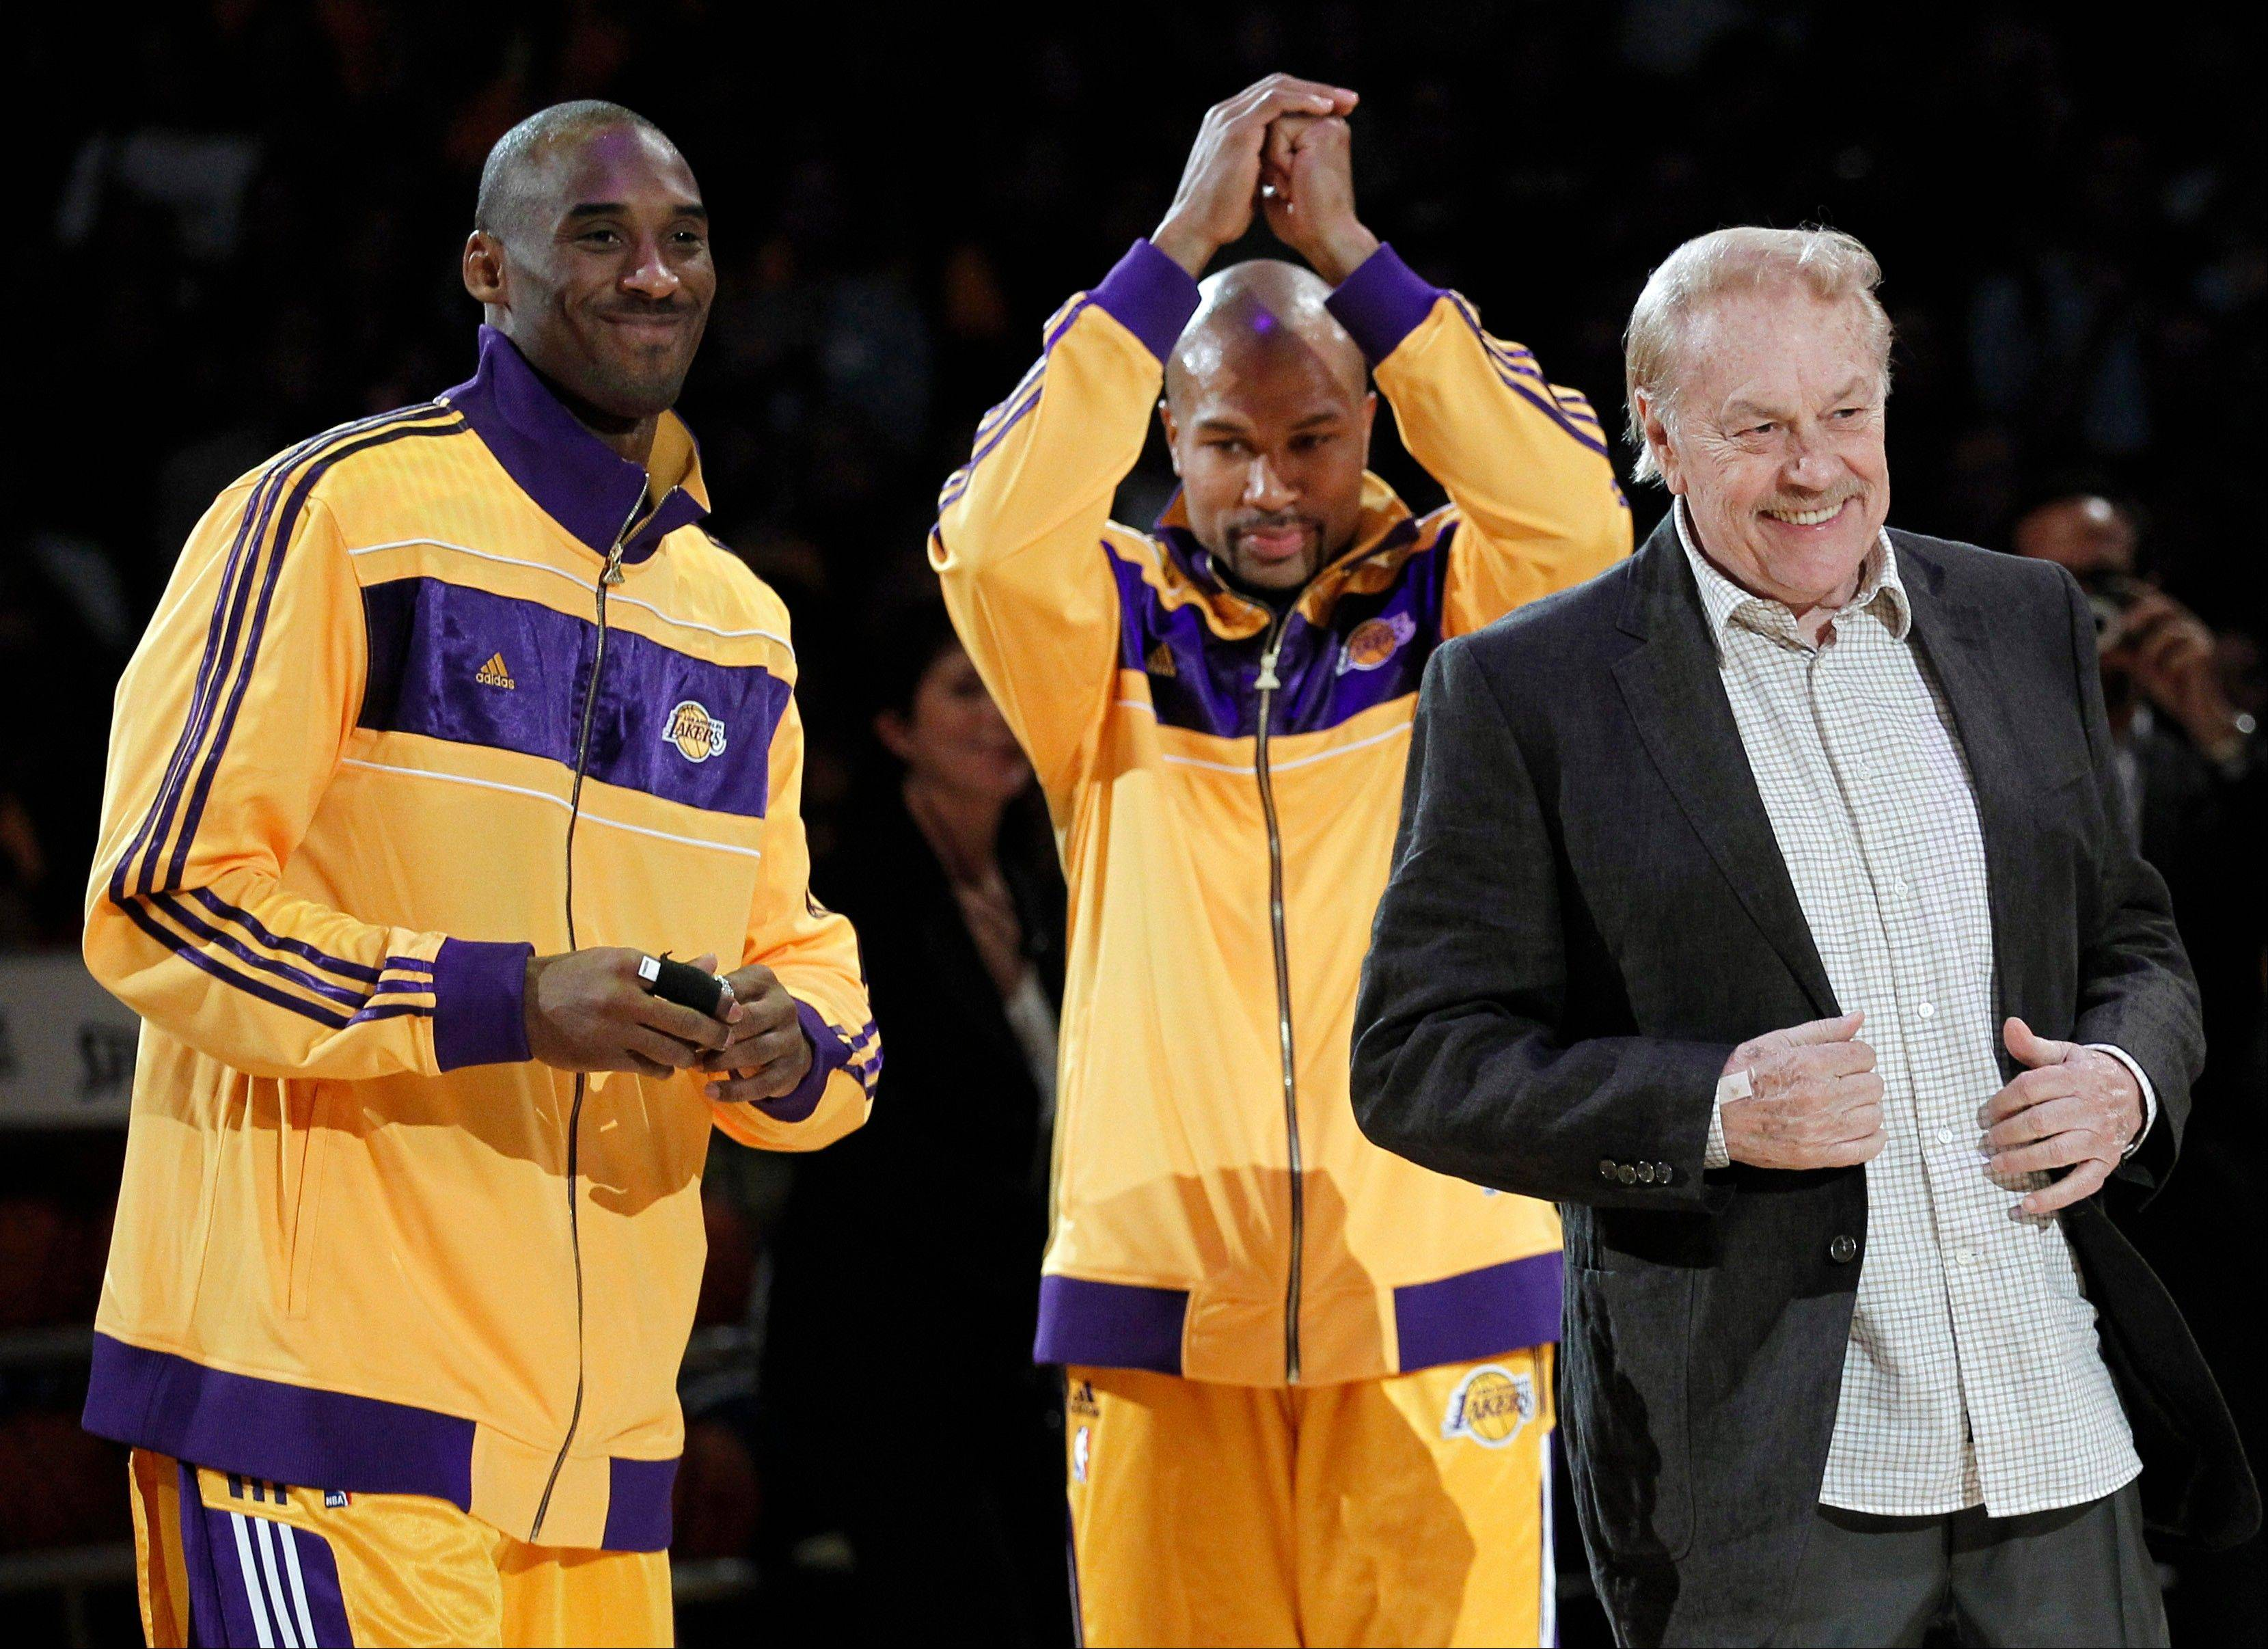 Los Angeles Laker owner Jerry Buss, right, walks out onto the court during the NBA championship ring ceremony as Kobe Bryant, left, and Derek Fisher look on. Buss, the Lakers' playboy owner who shepherded the NBA franchise to 10 championships, has died. He was 80. Bob Steiner, an assistant to Buss, confirmed Monday that Buss had died in Los Angeles.